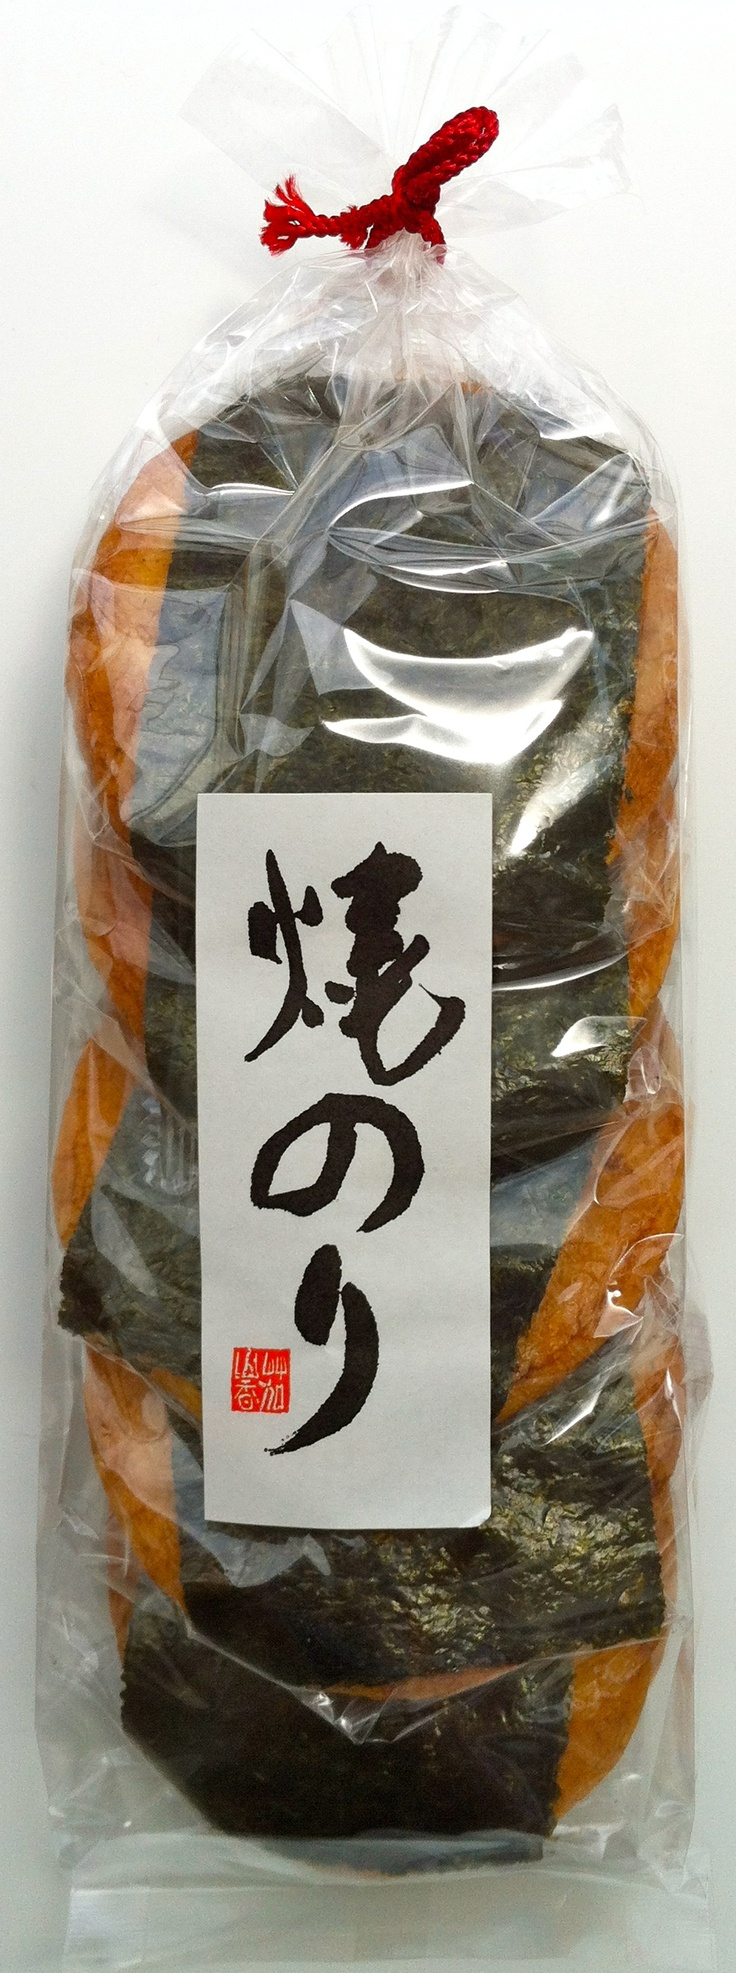 NORI-SOKA-SENBEI Japanese rice cracker